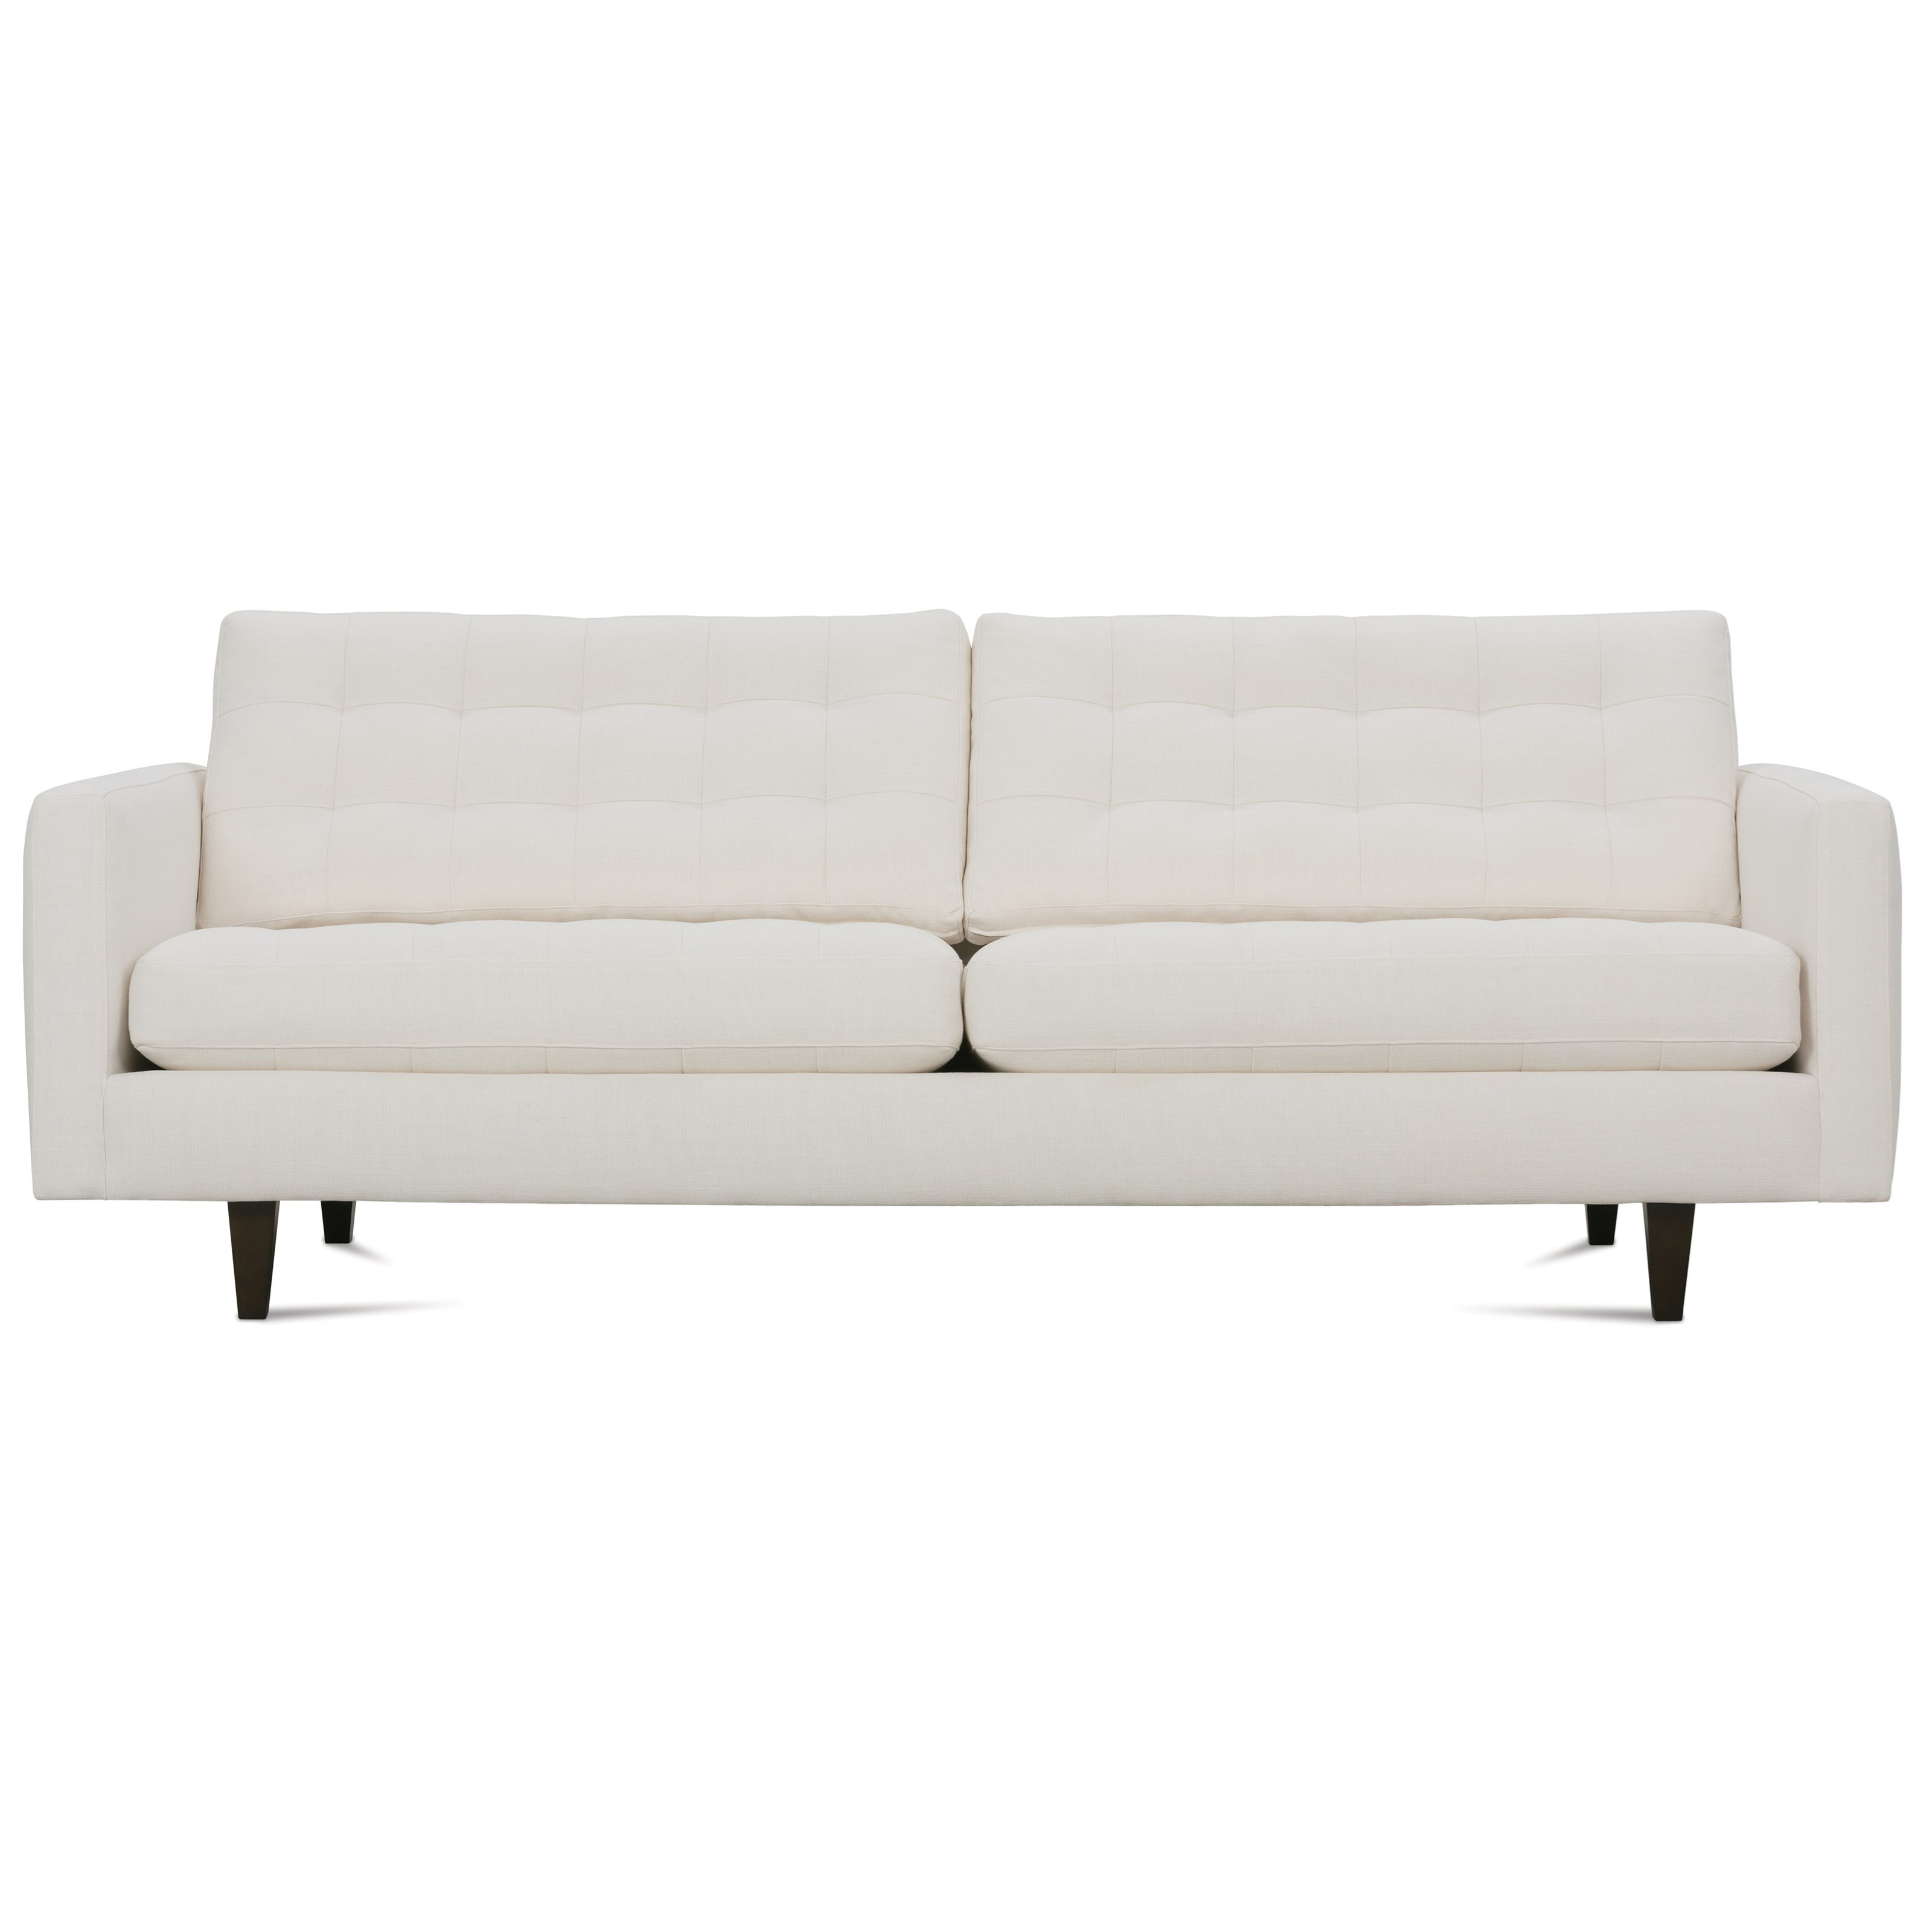 Rowe Modern Mix Contemporary Sofa With Tufted Seat And Back | Sprintz  Furniture | Sofas Nashville, Franklin, And Greater Tennessee